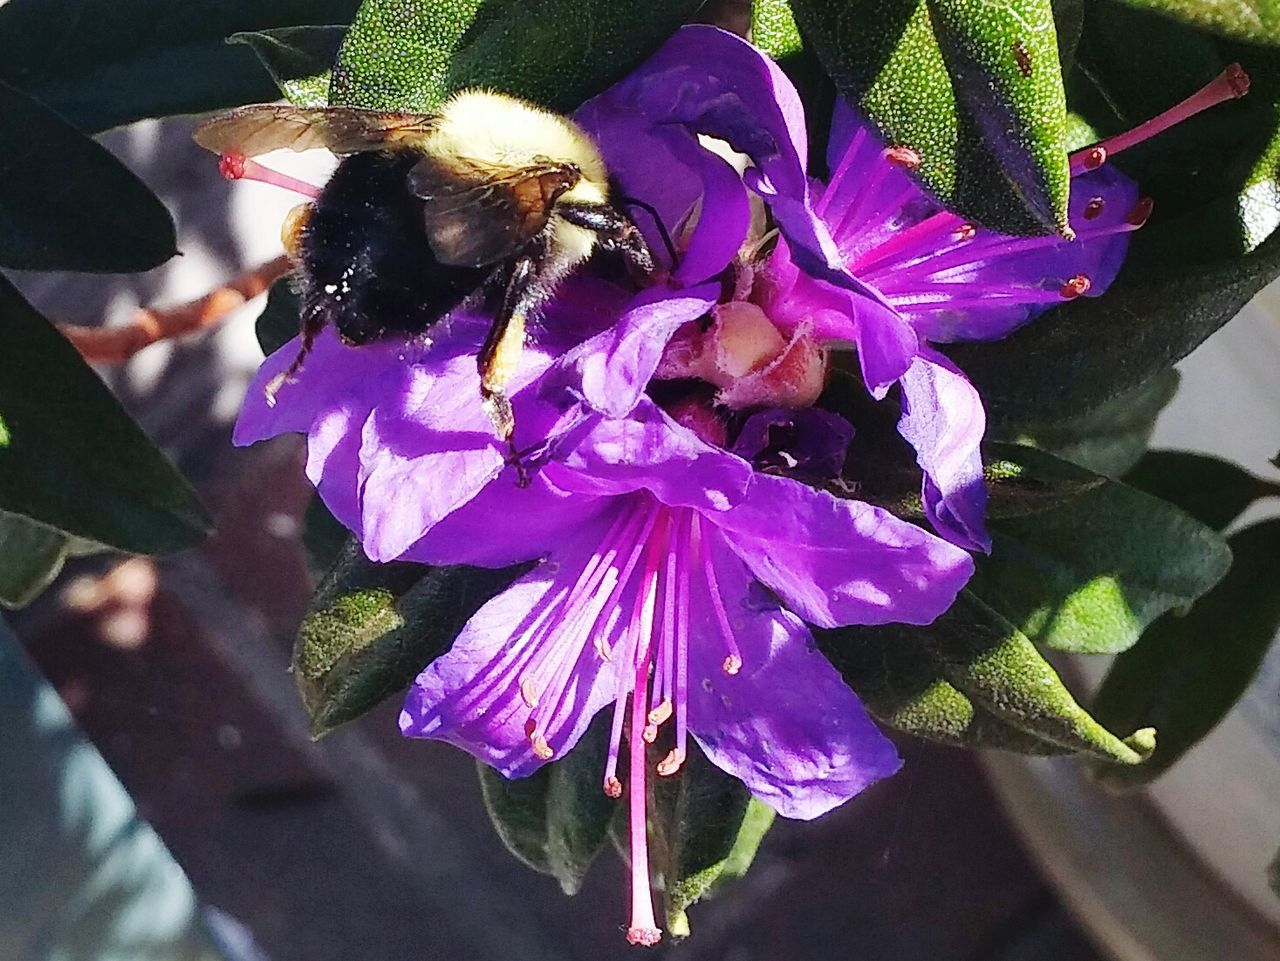 flower, insect, petal, purple, fragility, animals in the wild, animal themes, one animal, freshness, growth, flower head, nature, day, beauty in nature, plant, outdoors, no people, close-up, bee